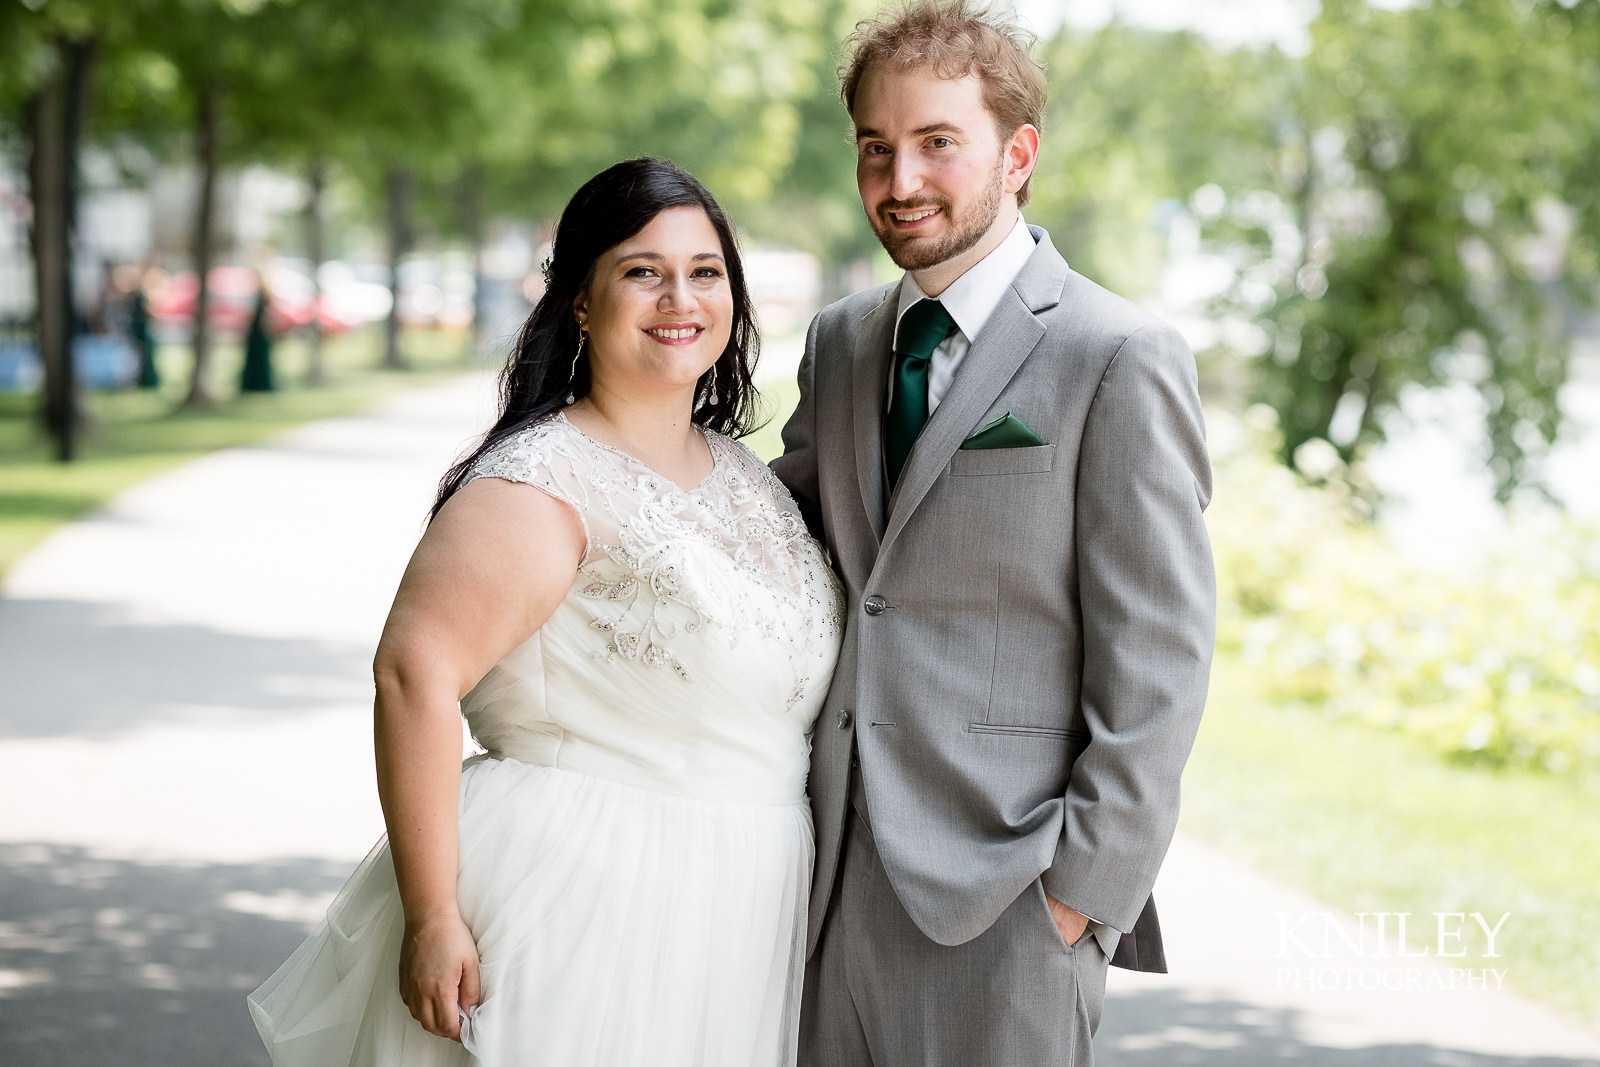 033 - Rochester NY wedding pictures - Erie Canal first look - XT2B4587.jpg